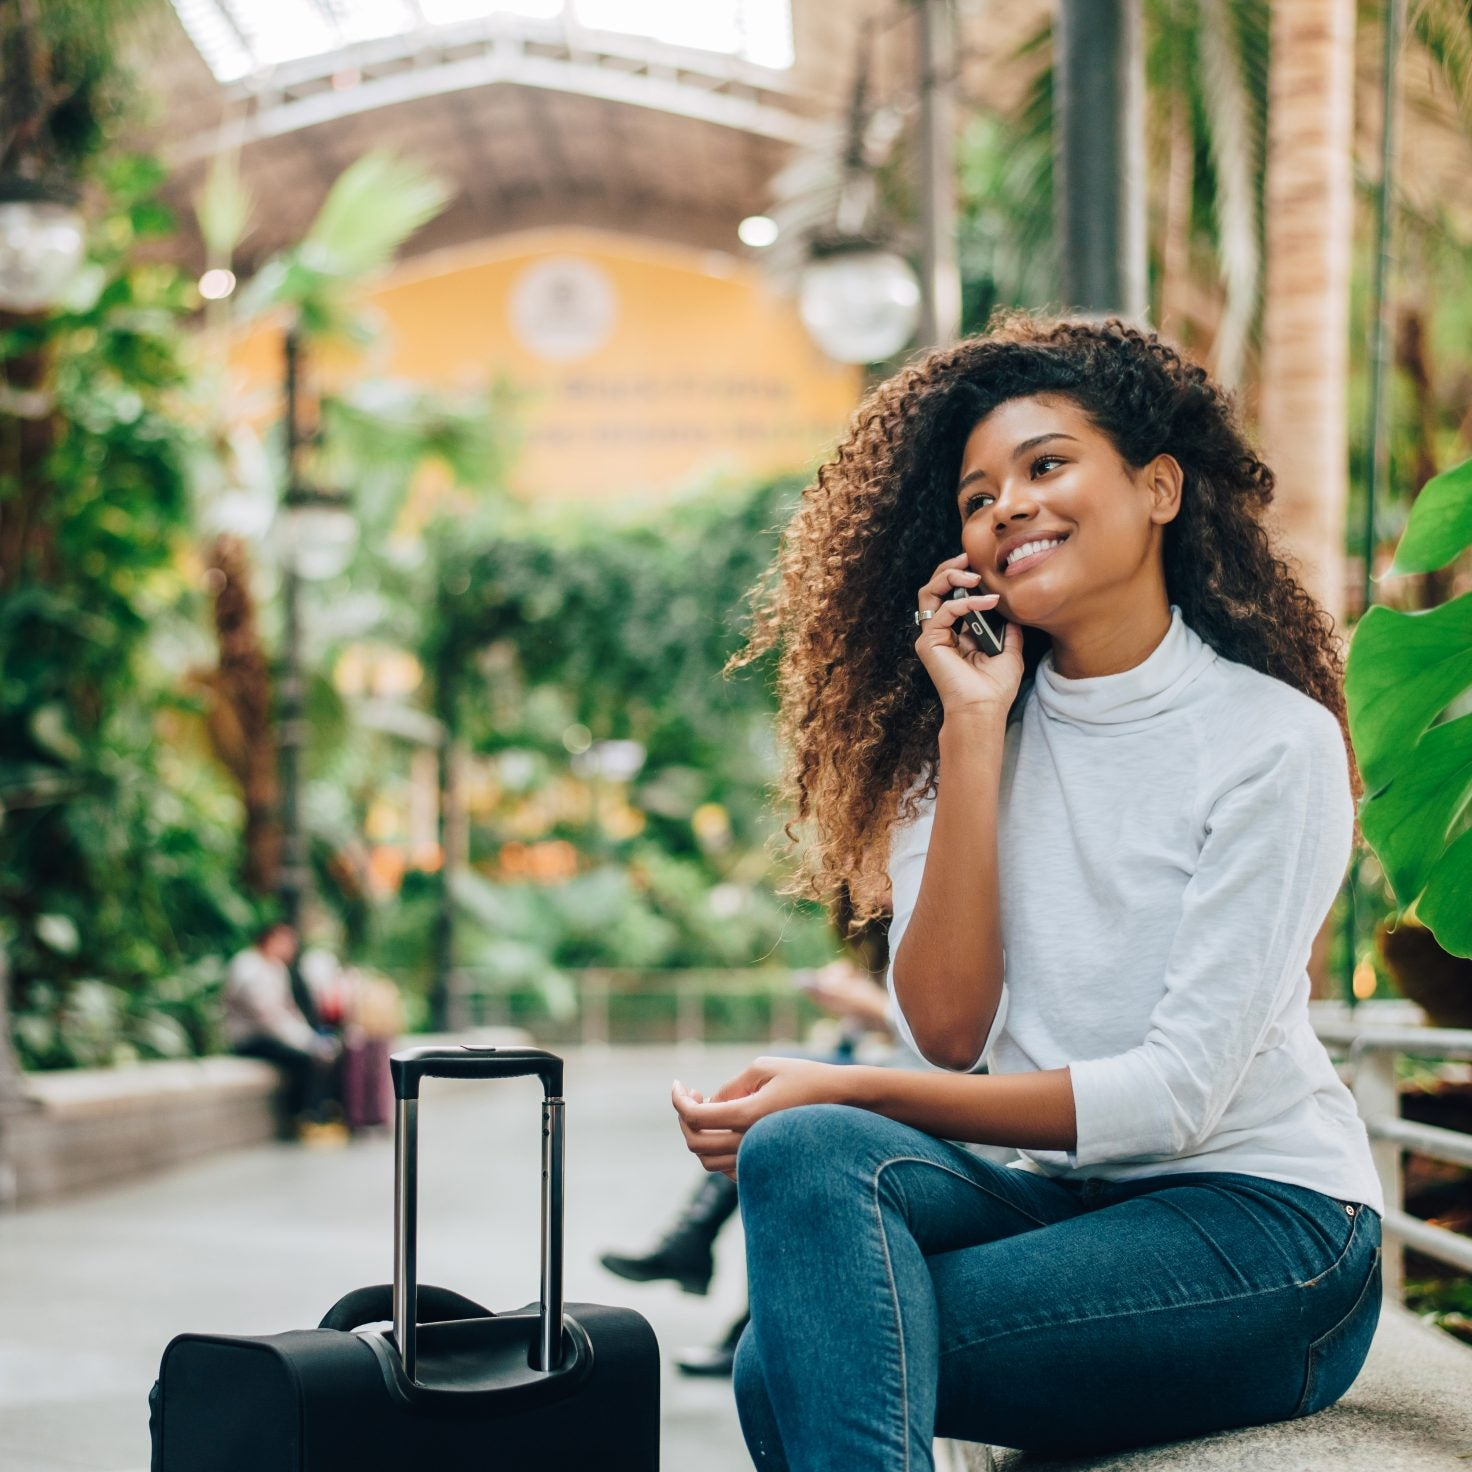 Takeoff And Land Looking And Smelling Good With These Travel-Friendly Essentials